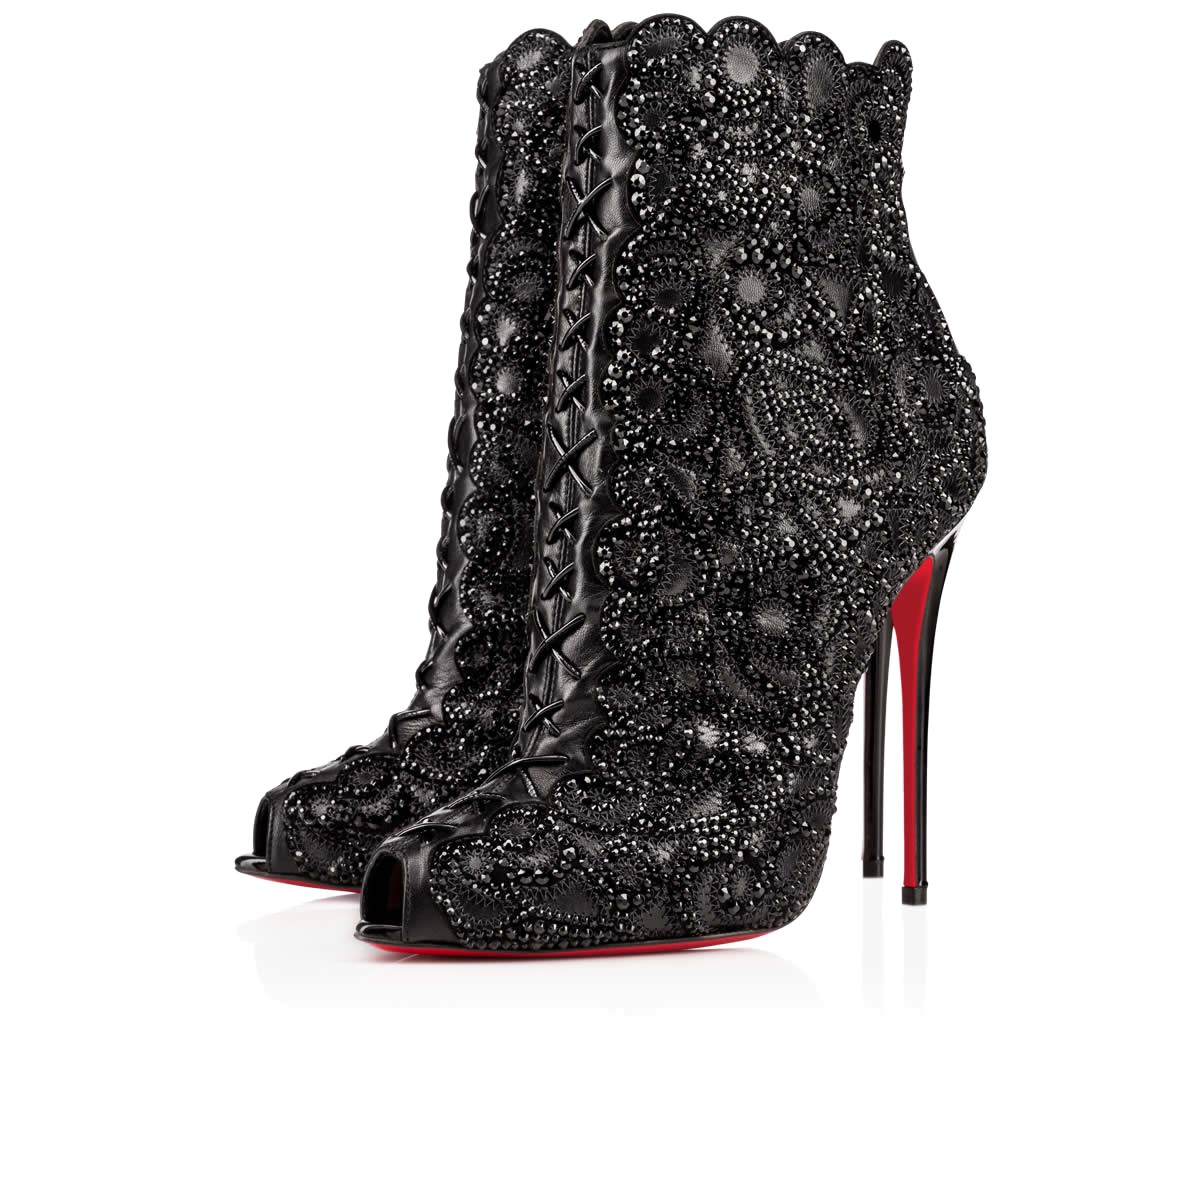 CHRISTIAN LOUBOUTIN Rihanini 120Mm Black Strass